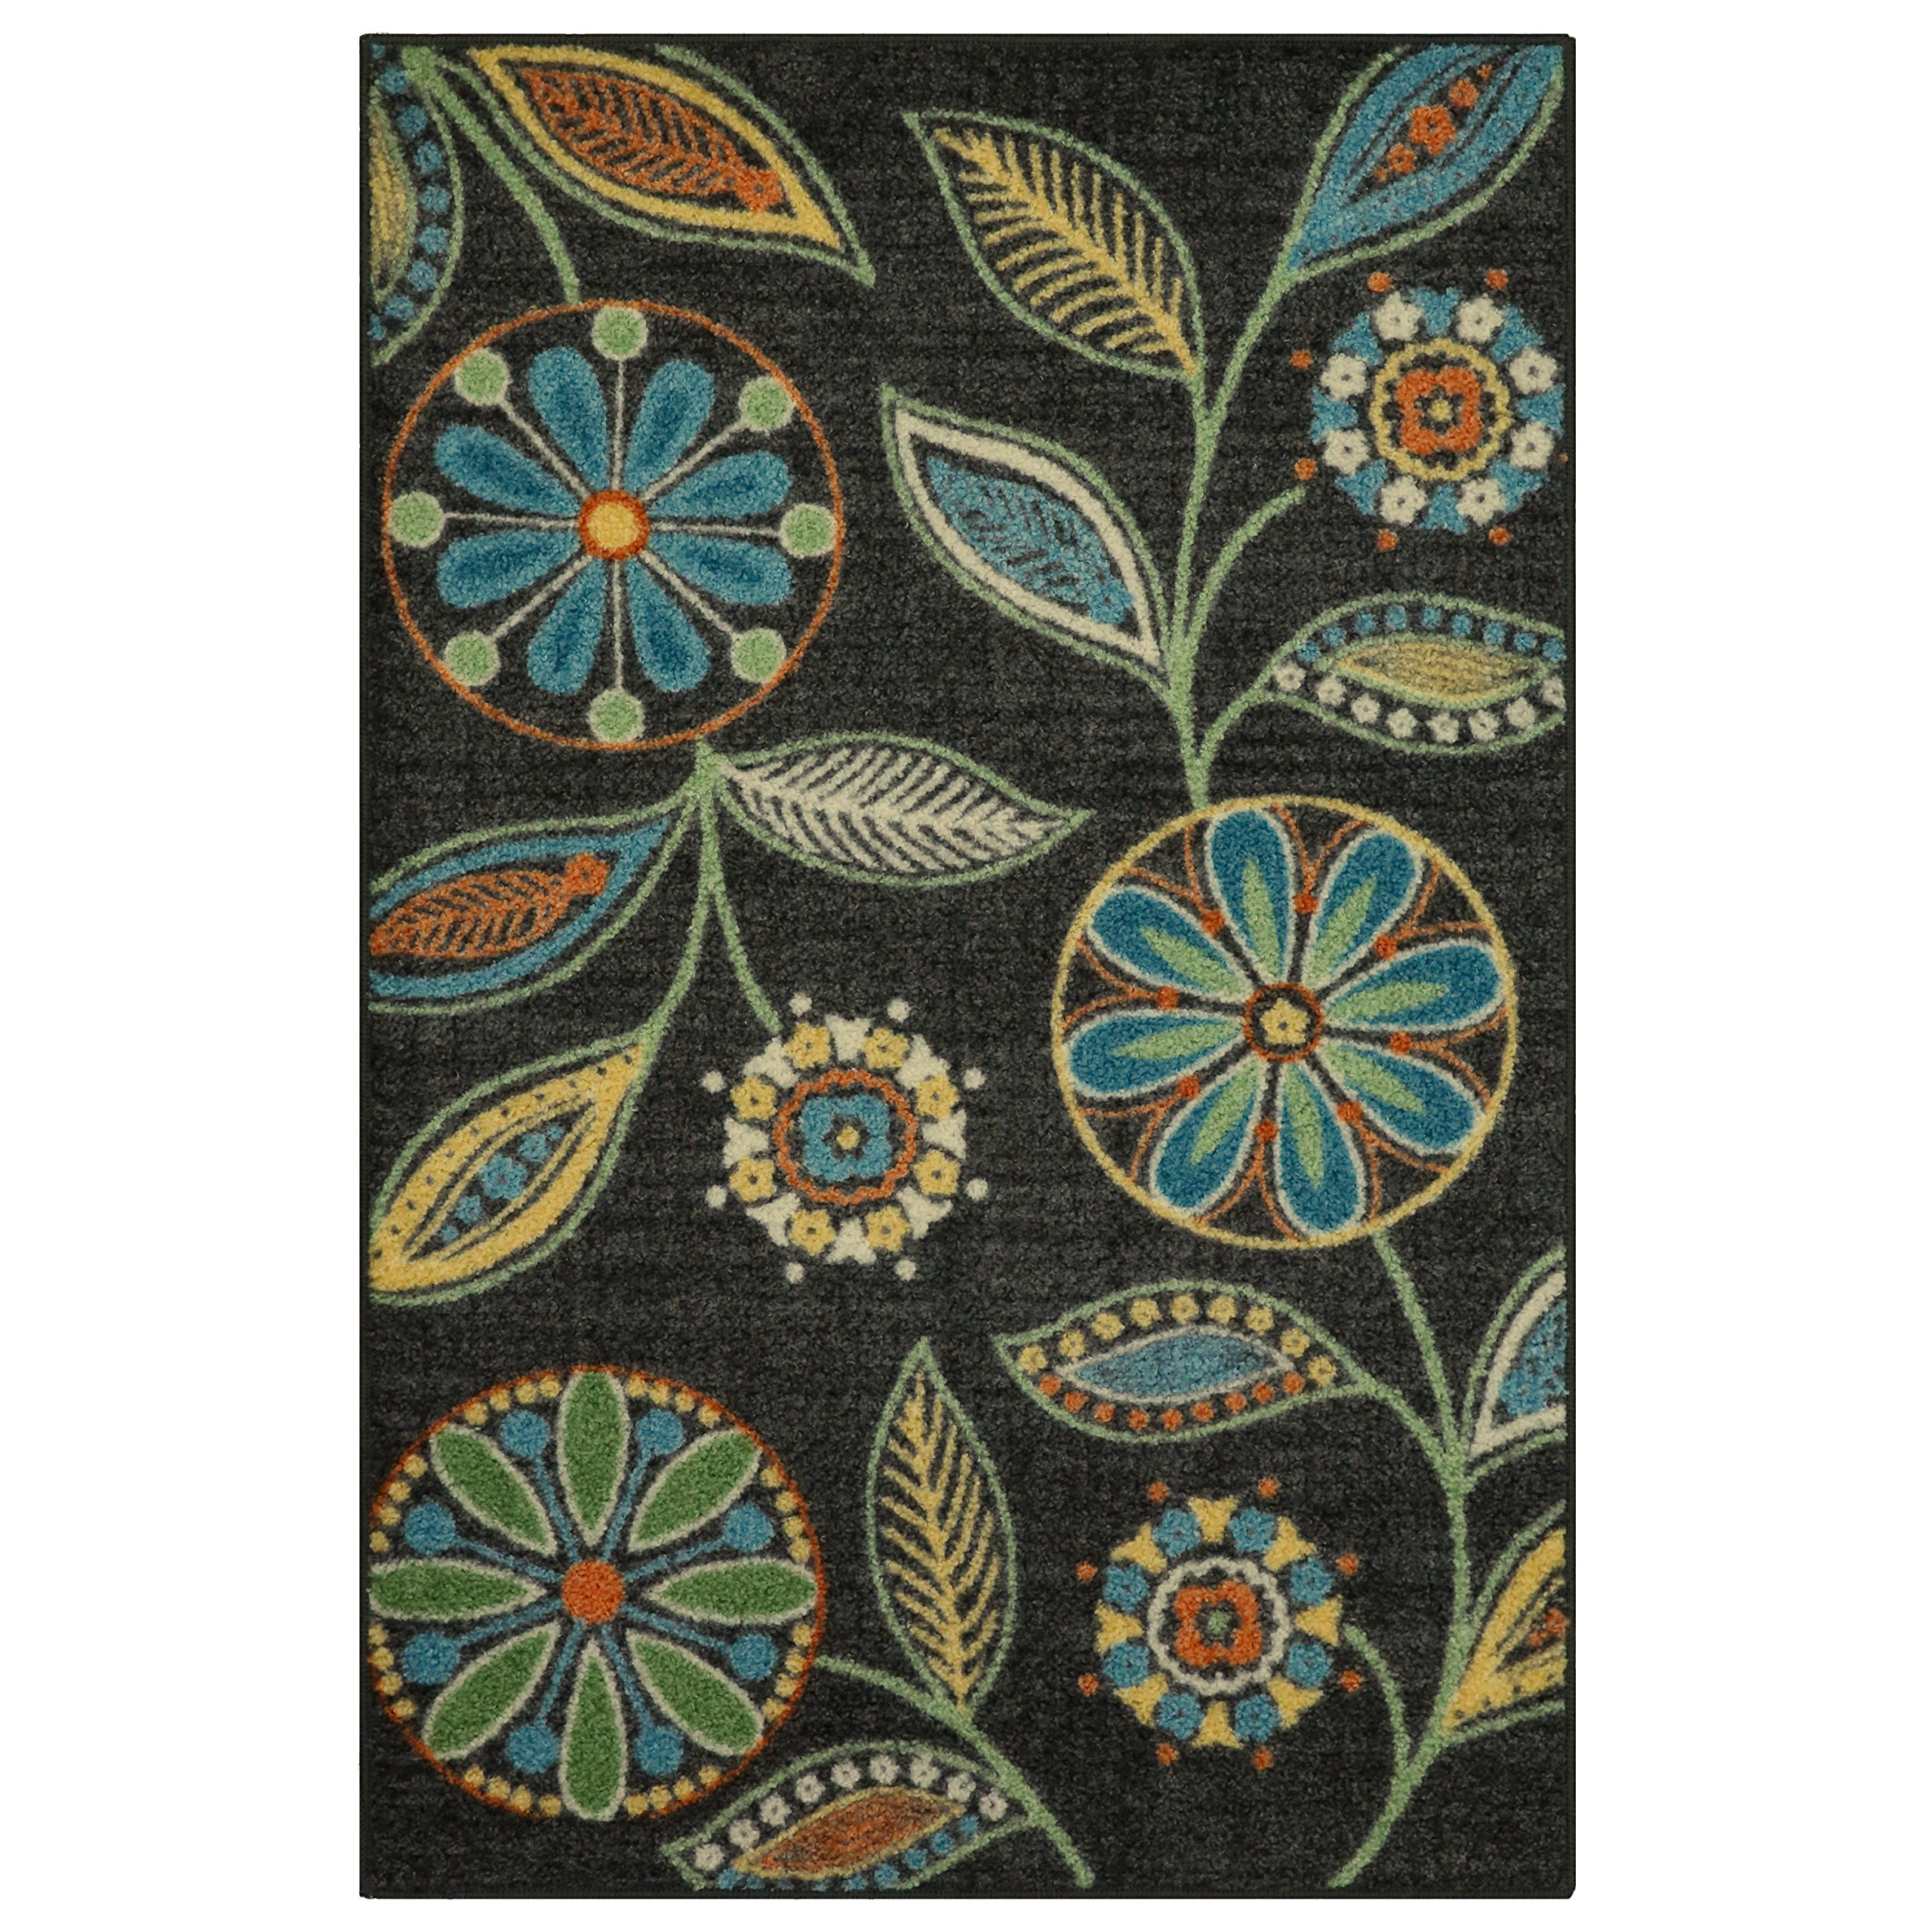 Maples Rugs Kitchen Rug - Reggie Artwork Collection 2.5 x 4 Non Skid Small Accent Throw Rugs [Made in USA] for Entryway and Bedroom, 2'6 x 3'10 by Maples Rugs